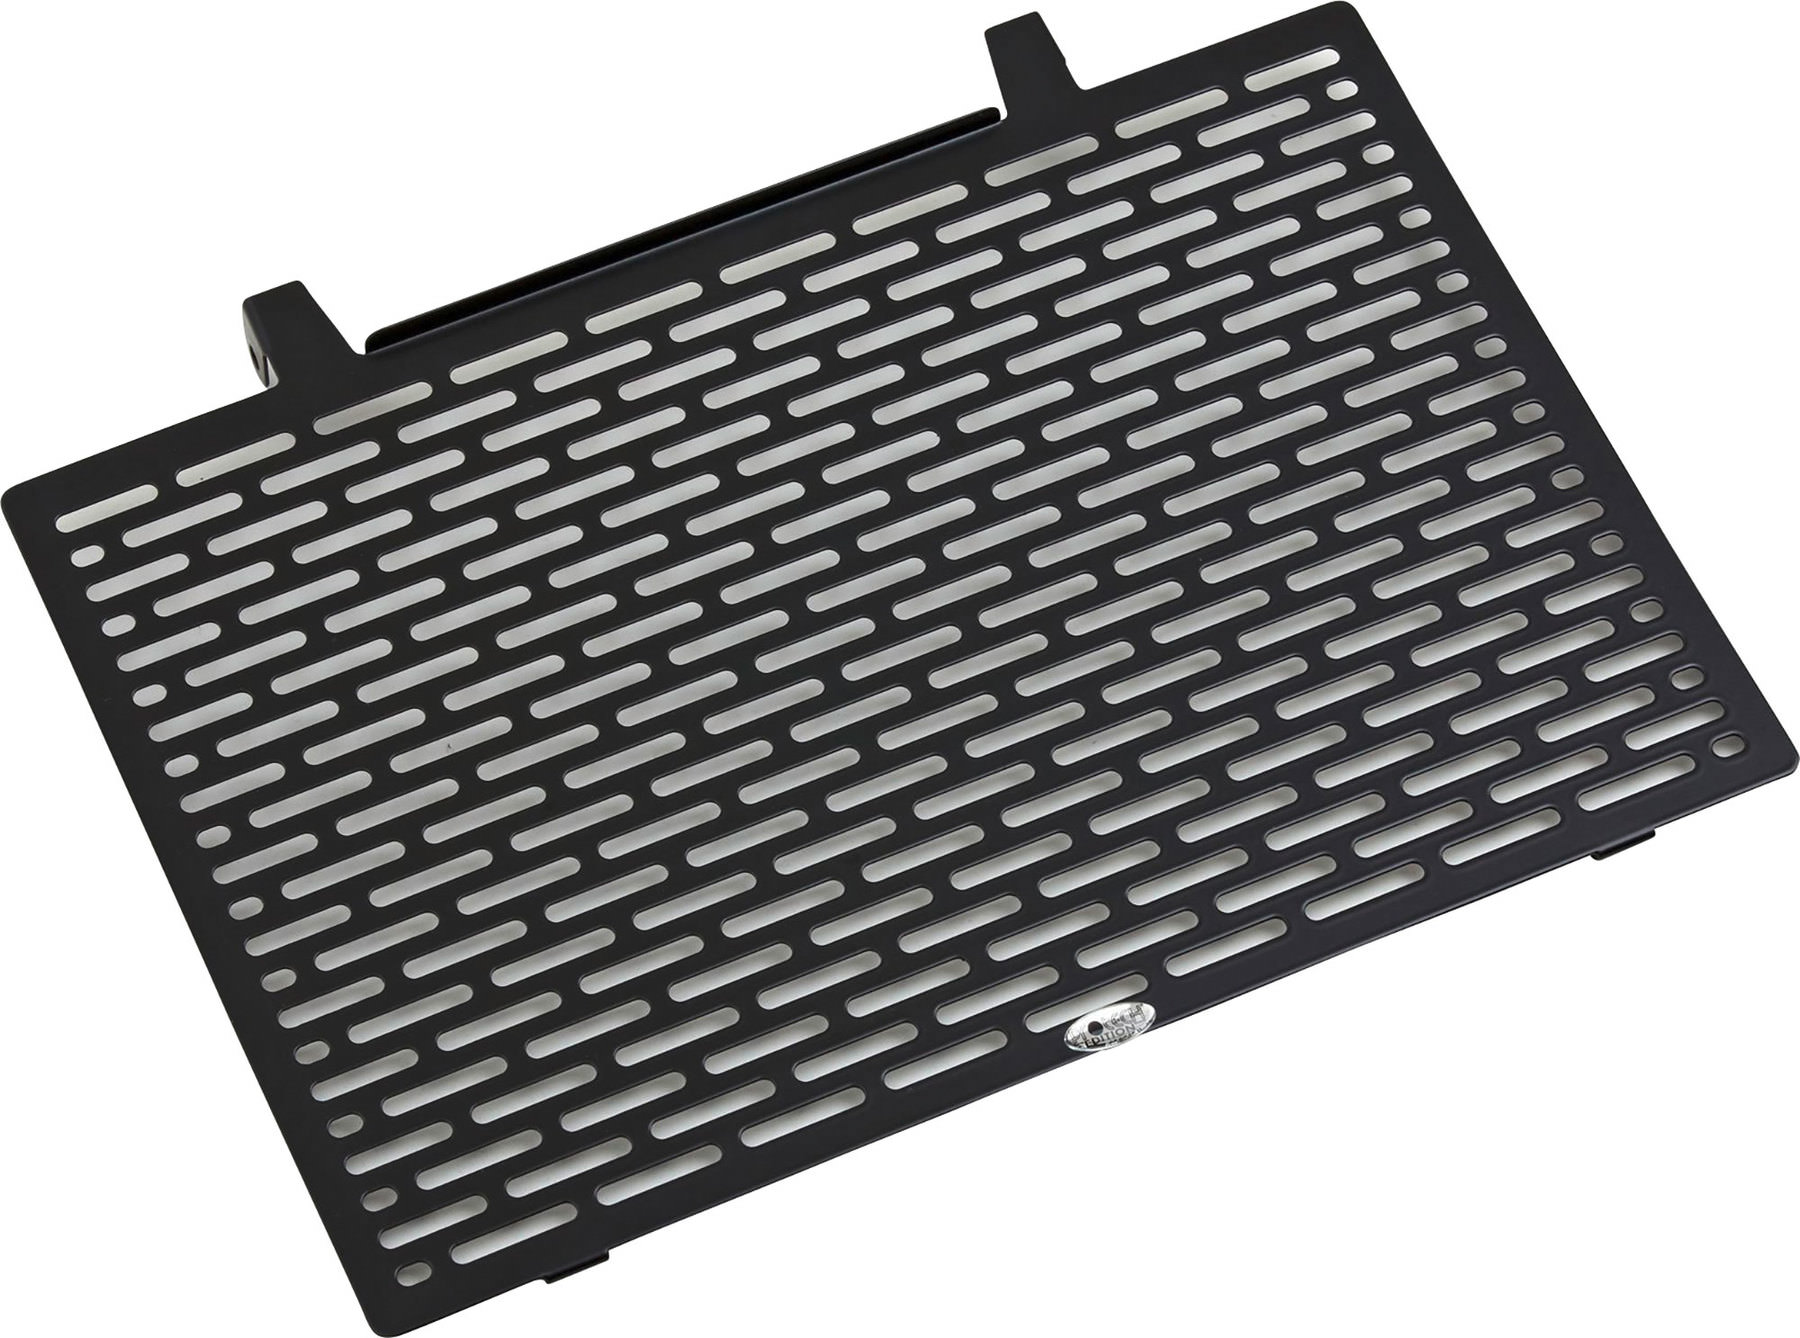 Buy Protech Edition Radiator Cover Powder Coated In Black Louis Motorcycle Clothing And Technology